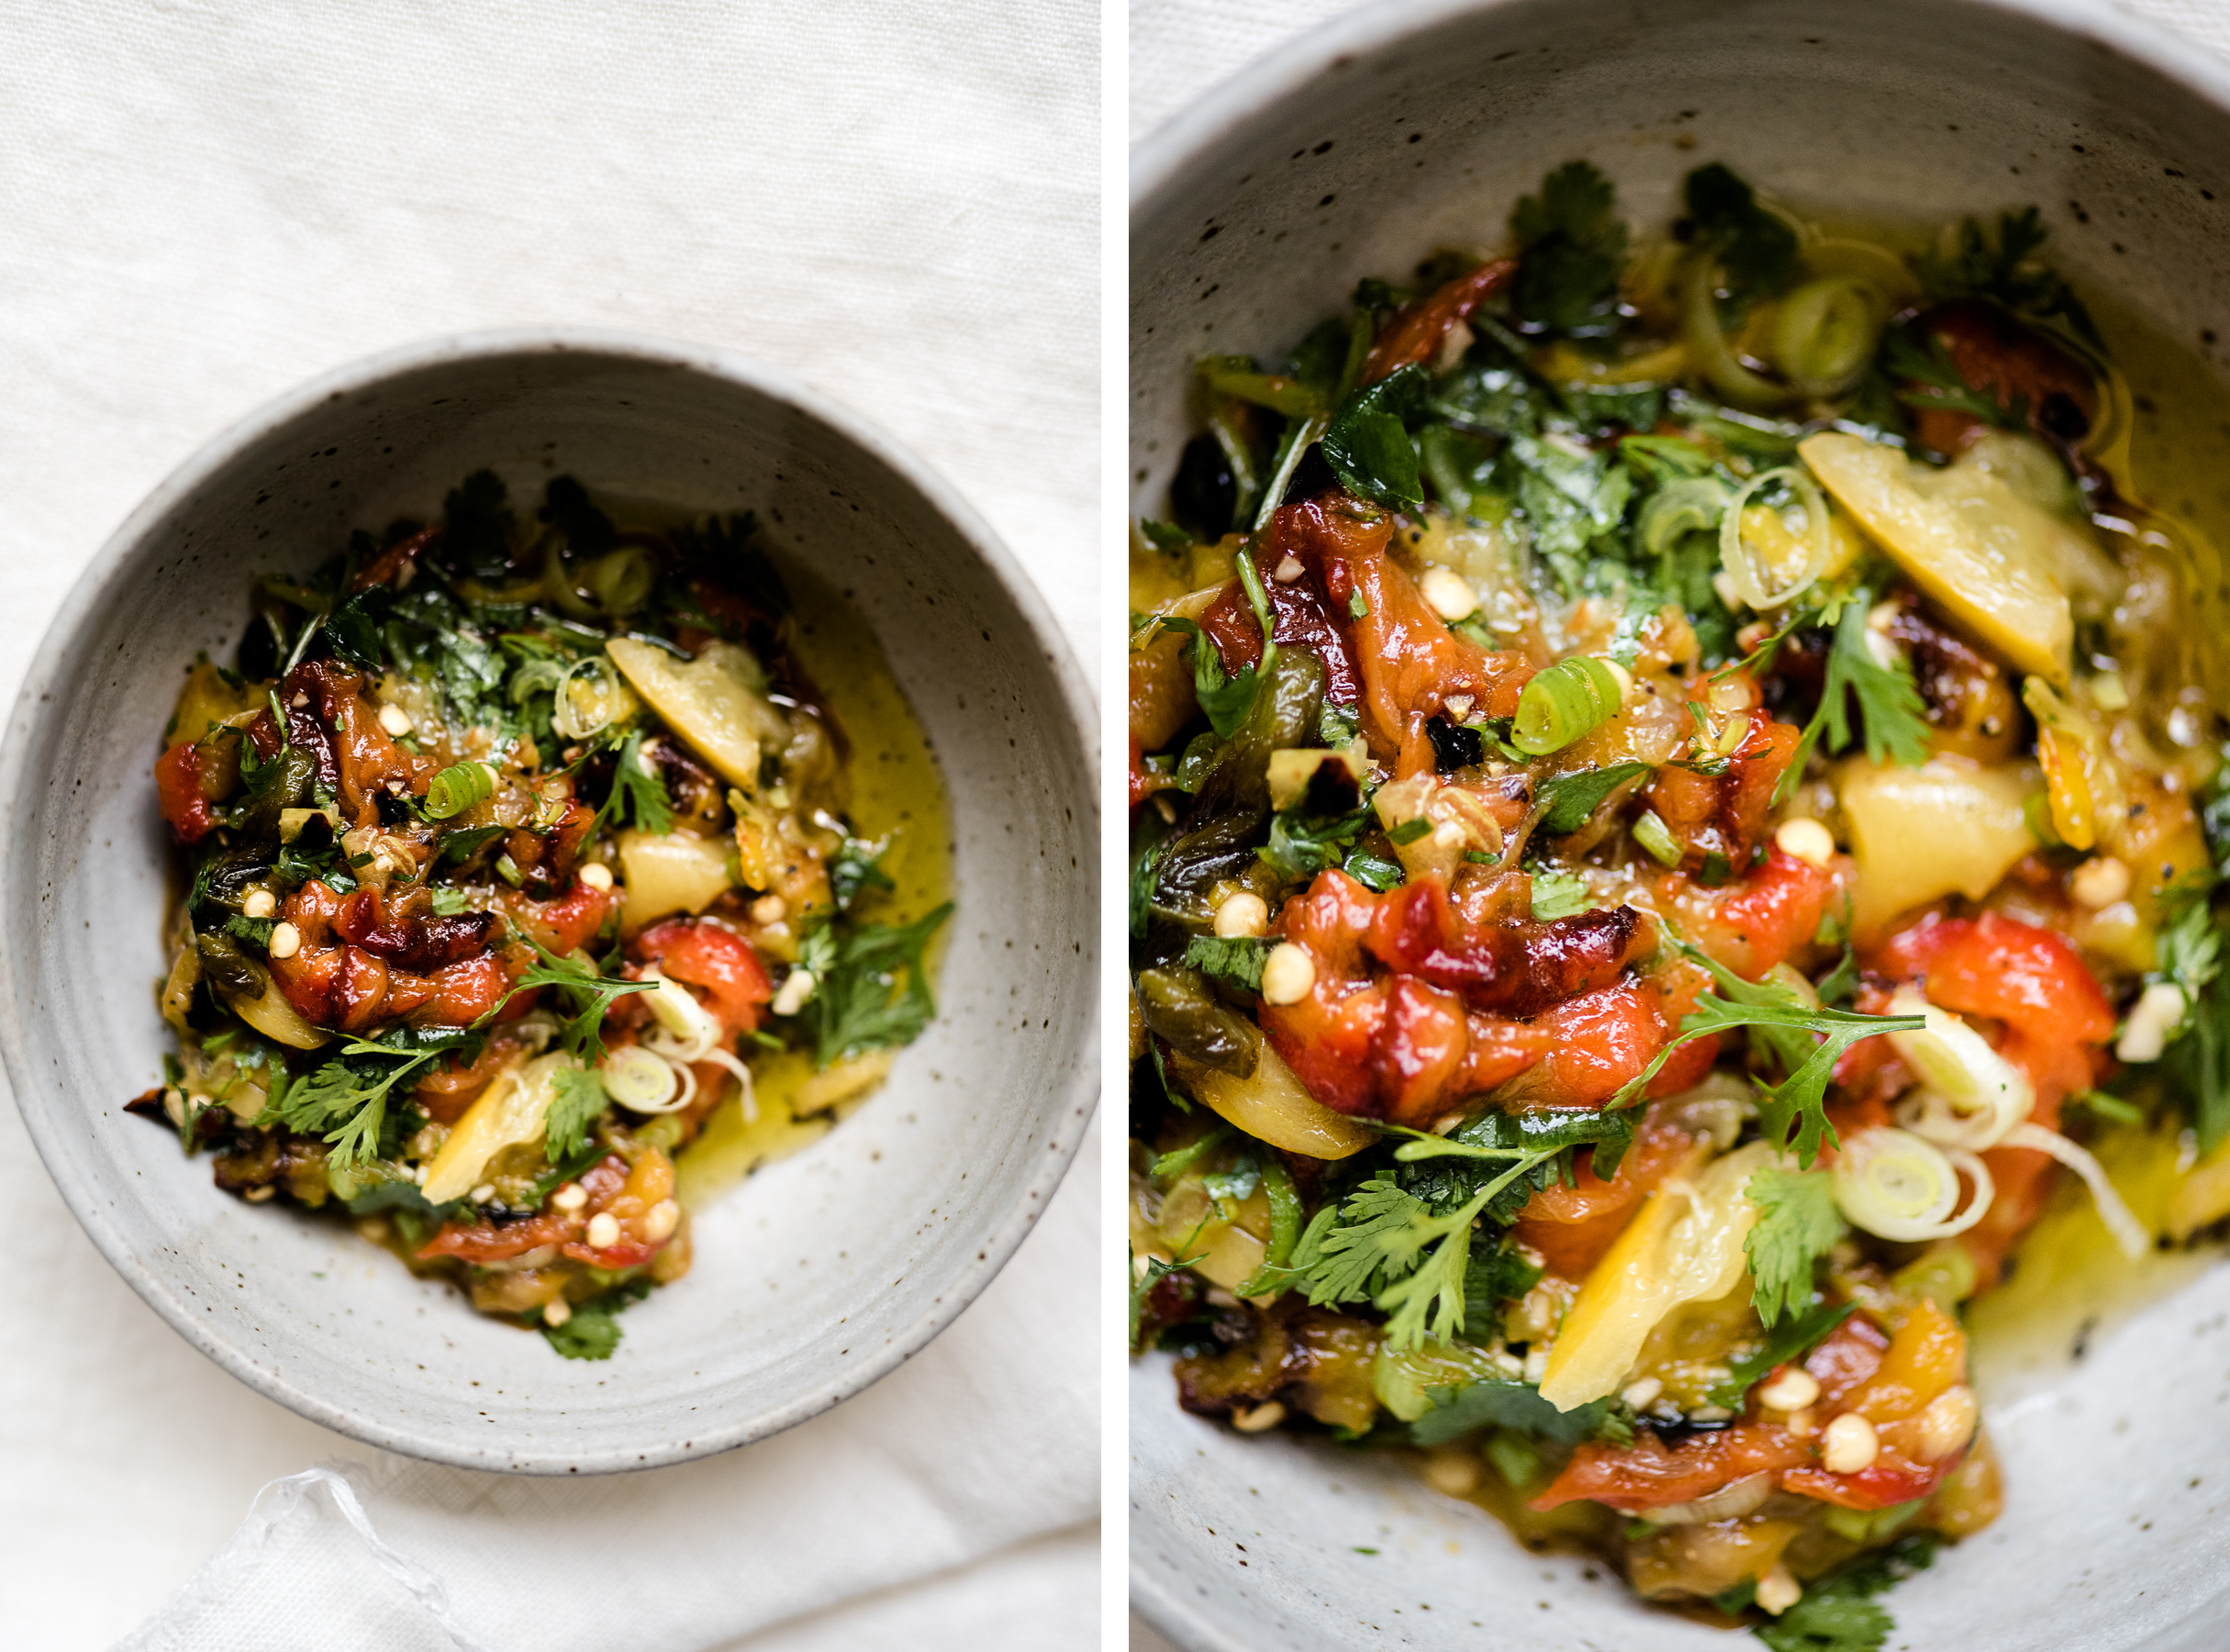 Roasted Peppers Salad with Preserved Lemons, Green Onions and Cilantro | Gather a Table